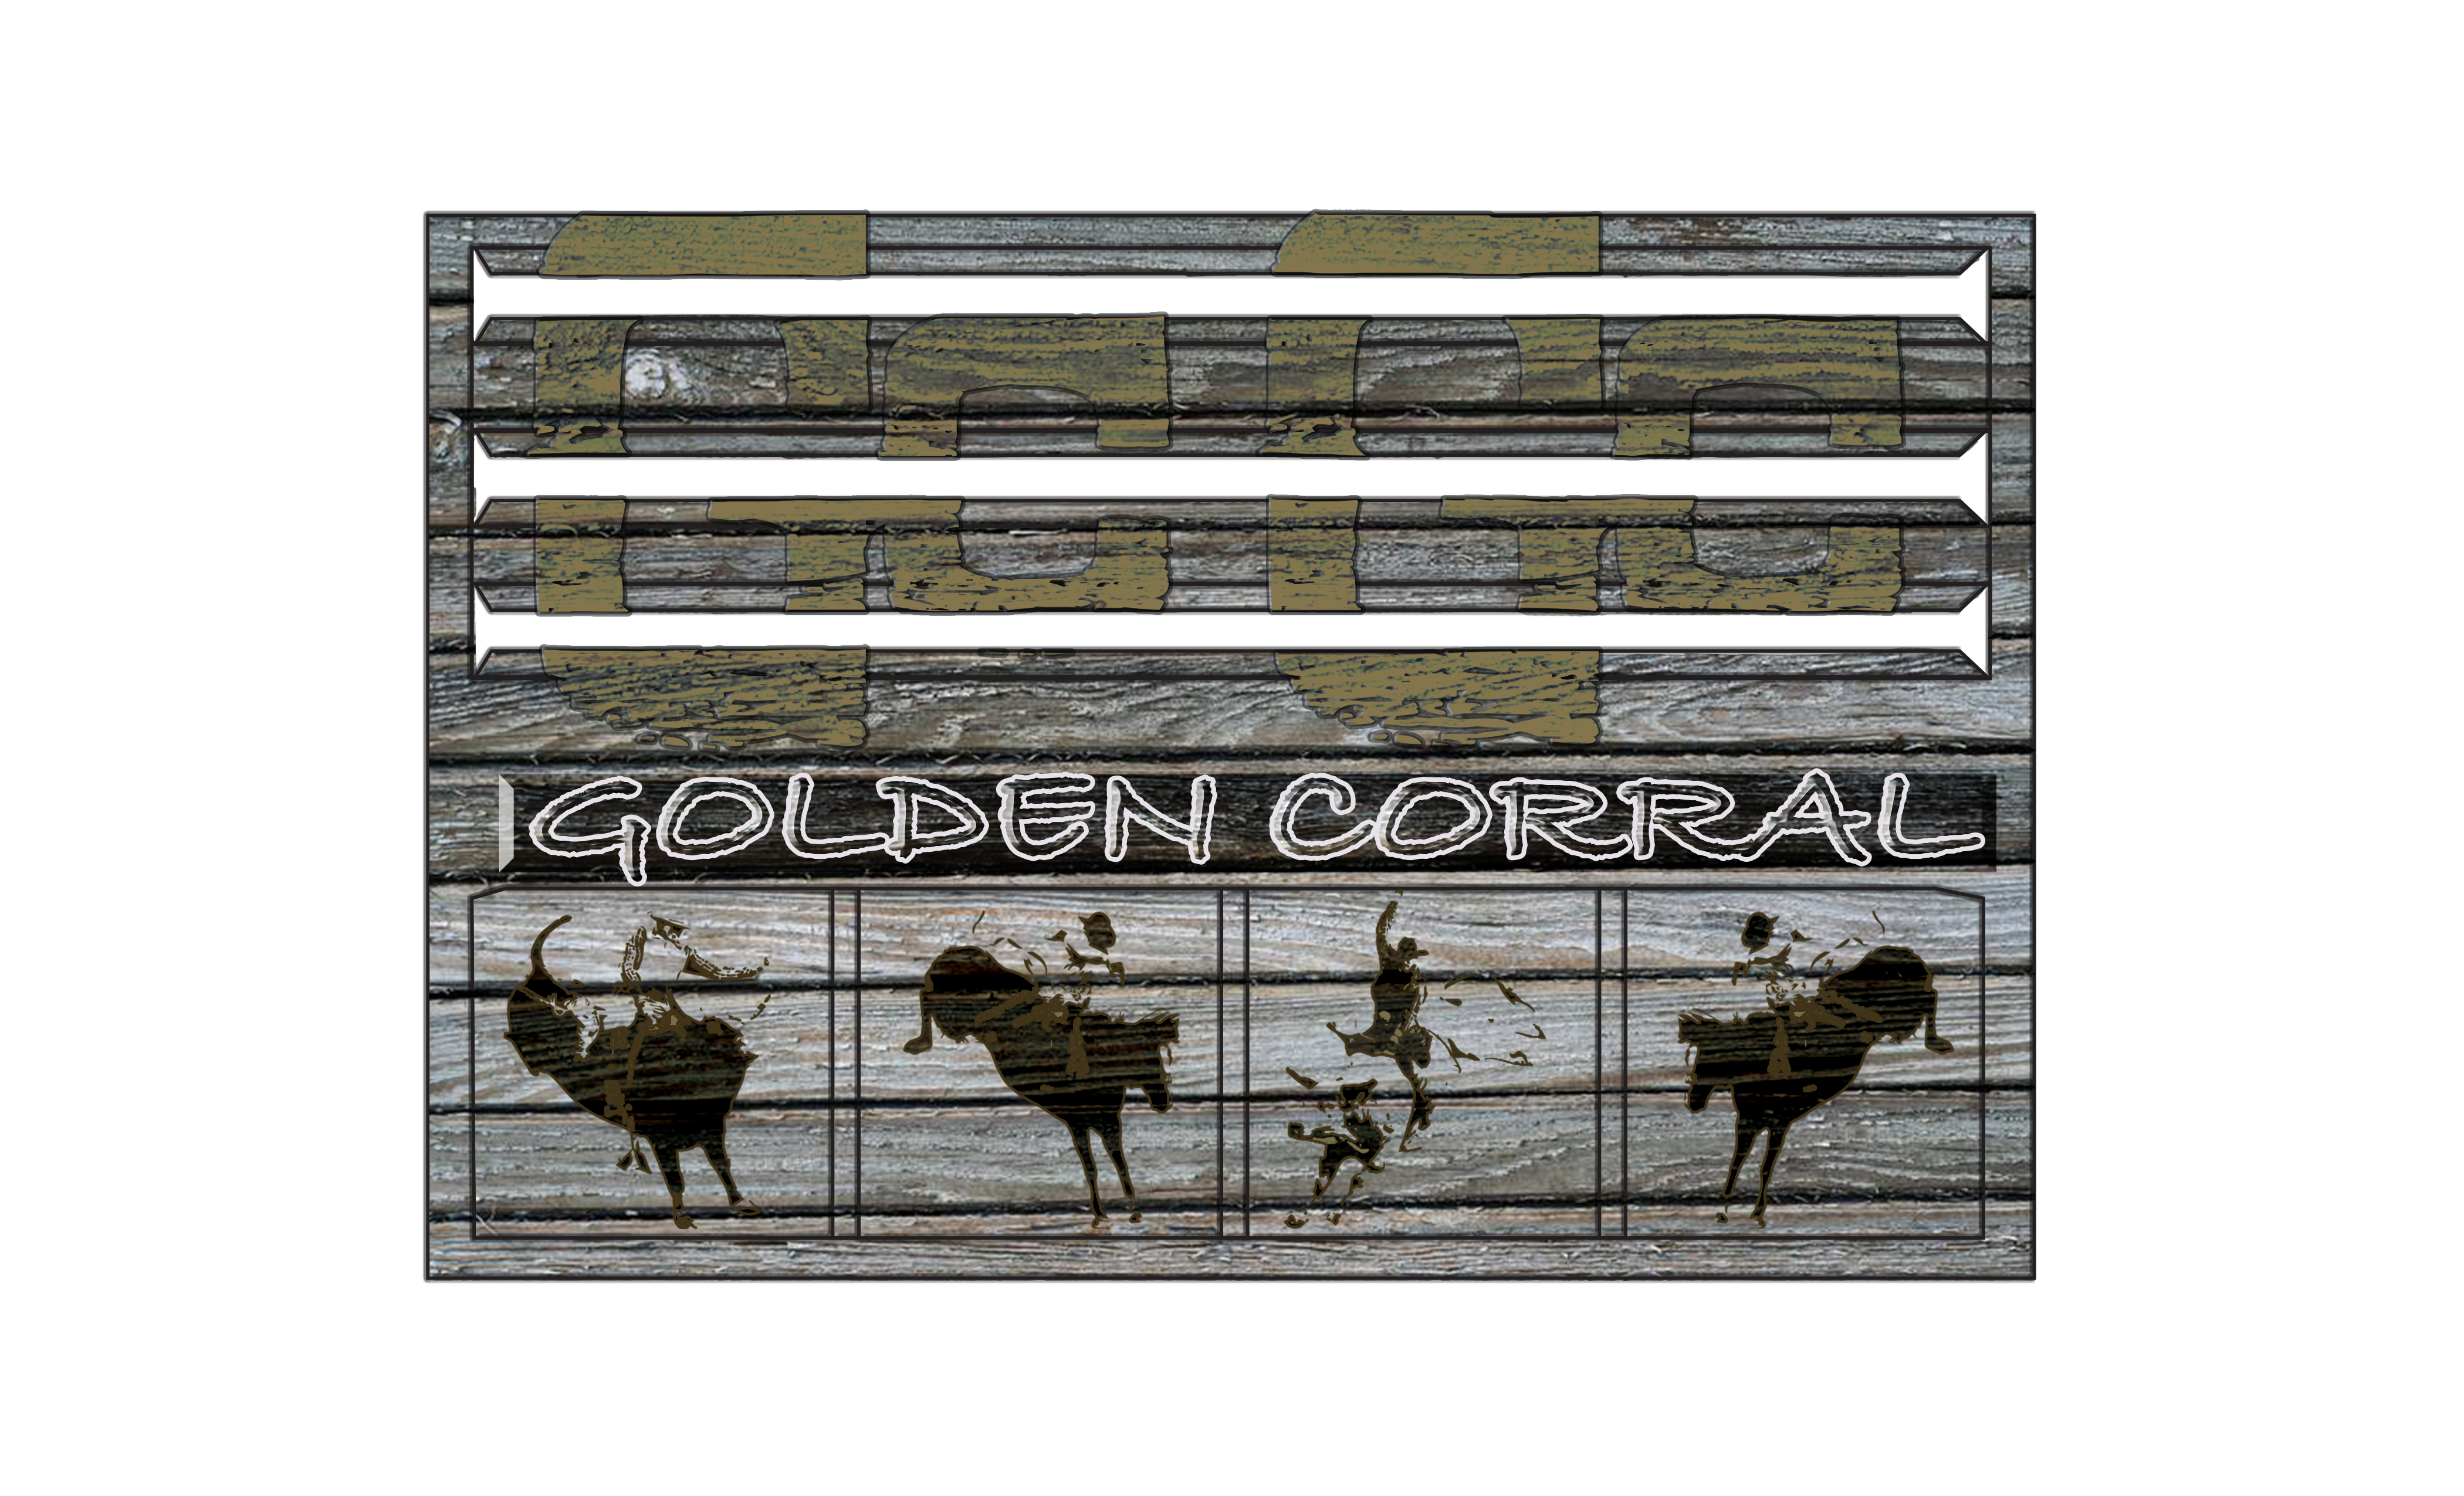 This Is A Remake Of The Golden Corral Restaurant Logo To Given It A More Western American Theme Logo Restaurant American Theme Design